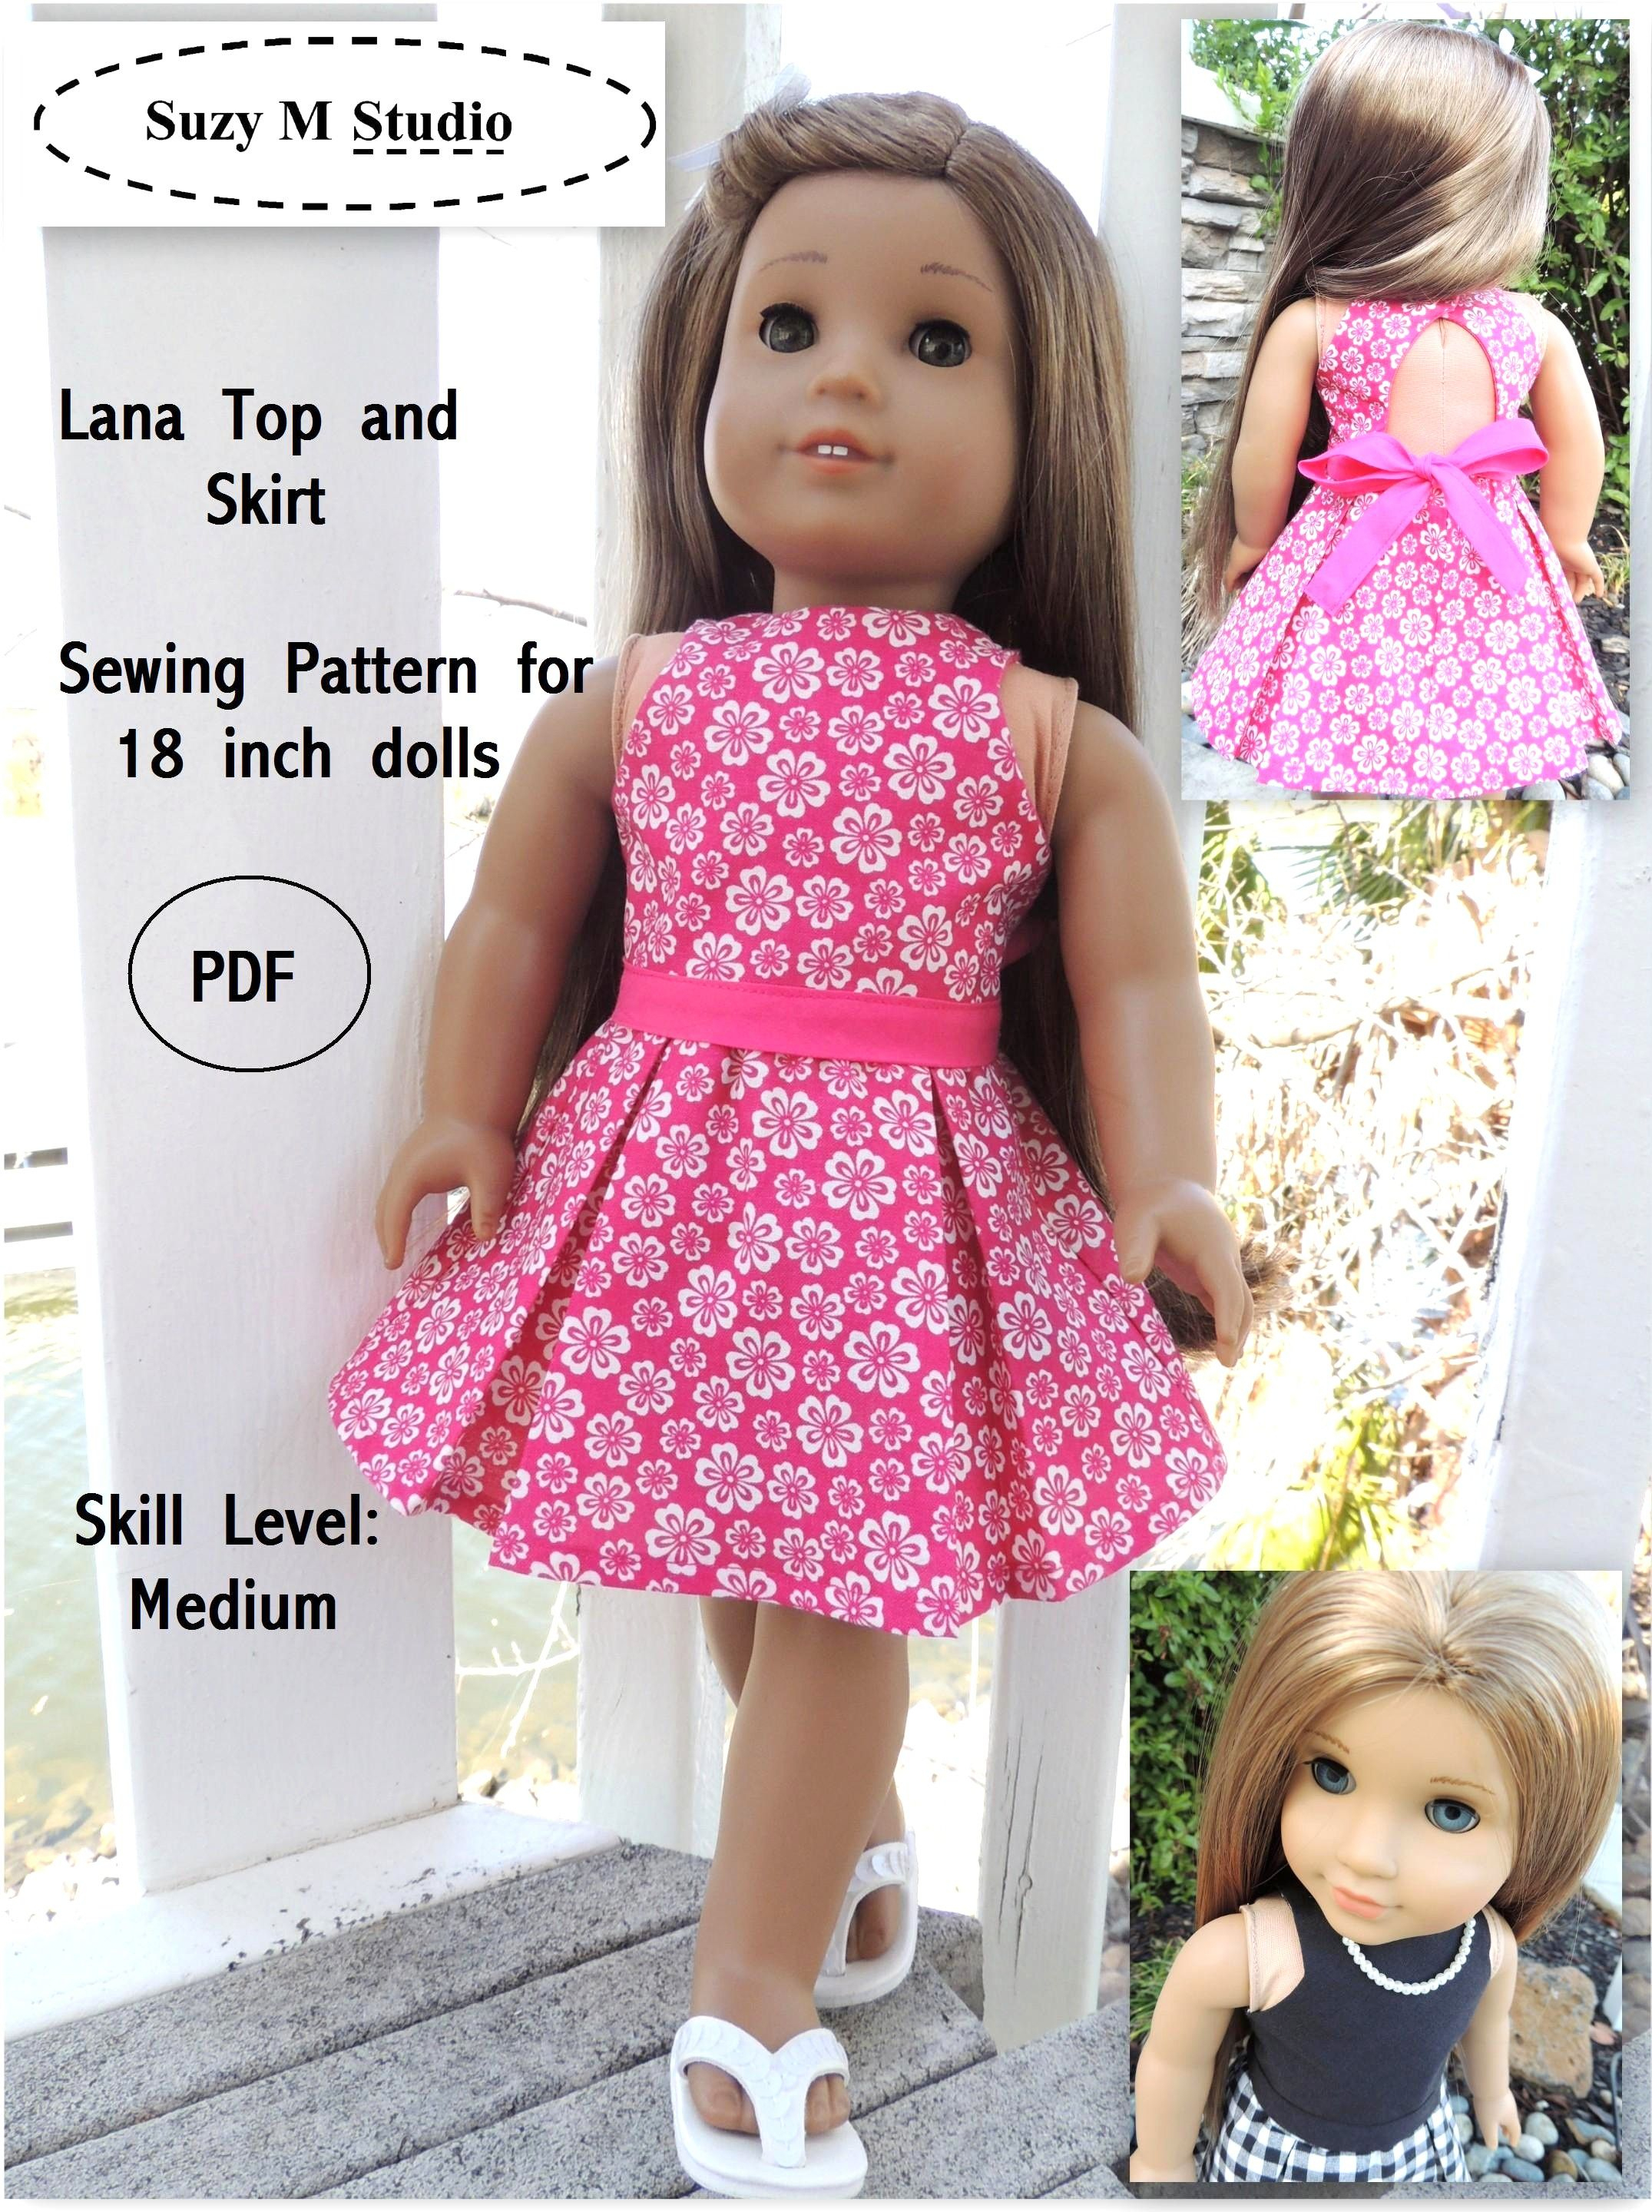 Free Tutorial Pdf   Suzymstudio …   Doll Clothes   Doll … - American Girl Doll Clothes Patterns Free Printable